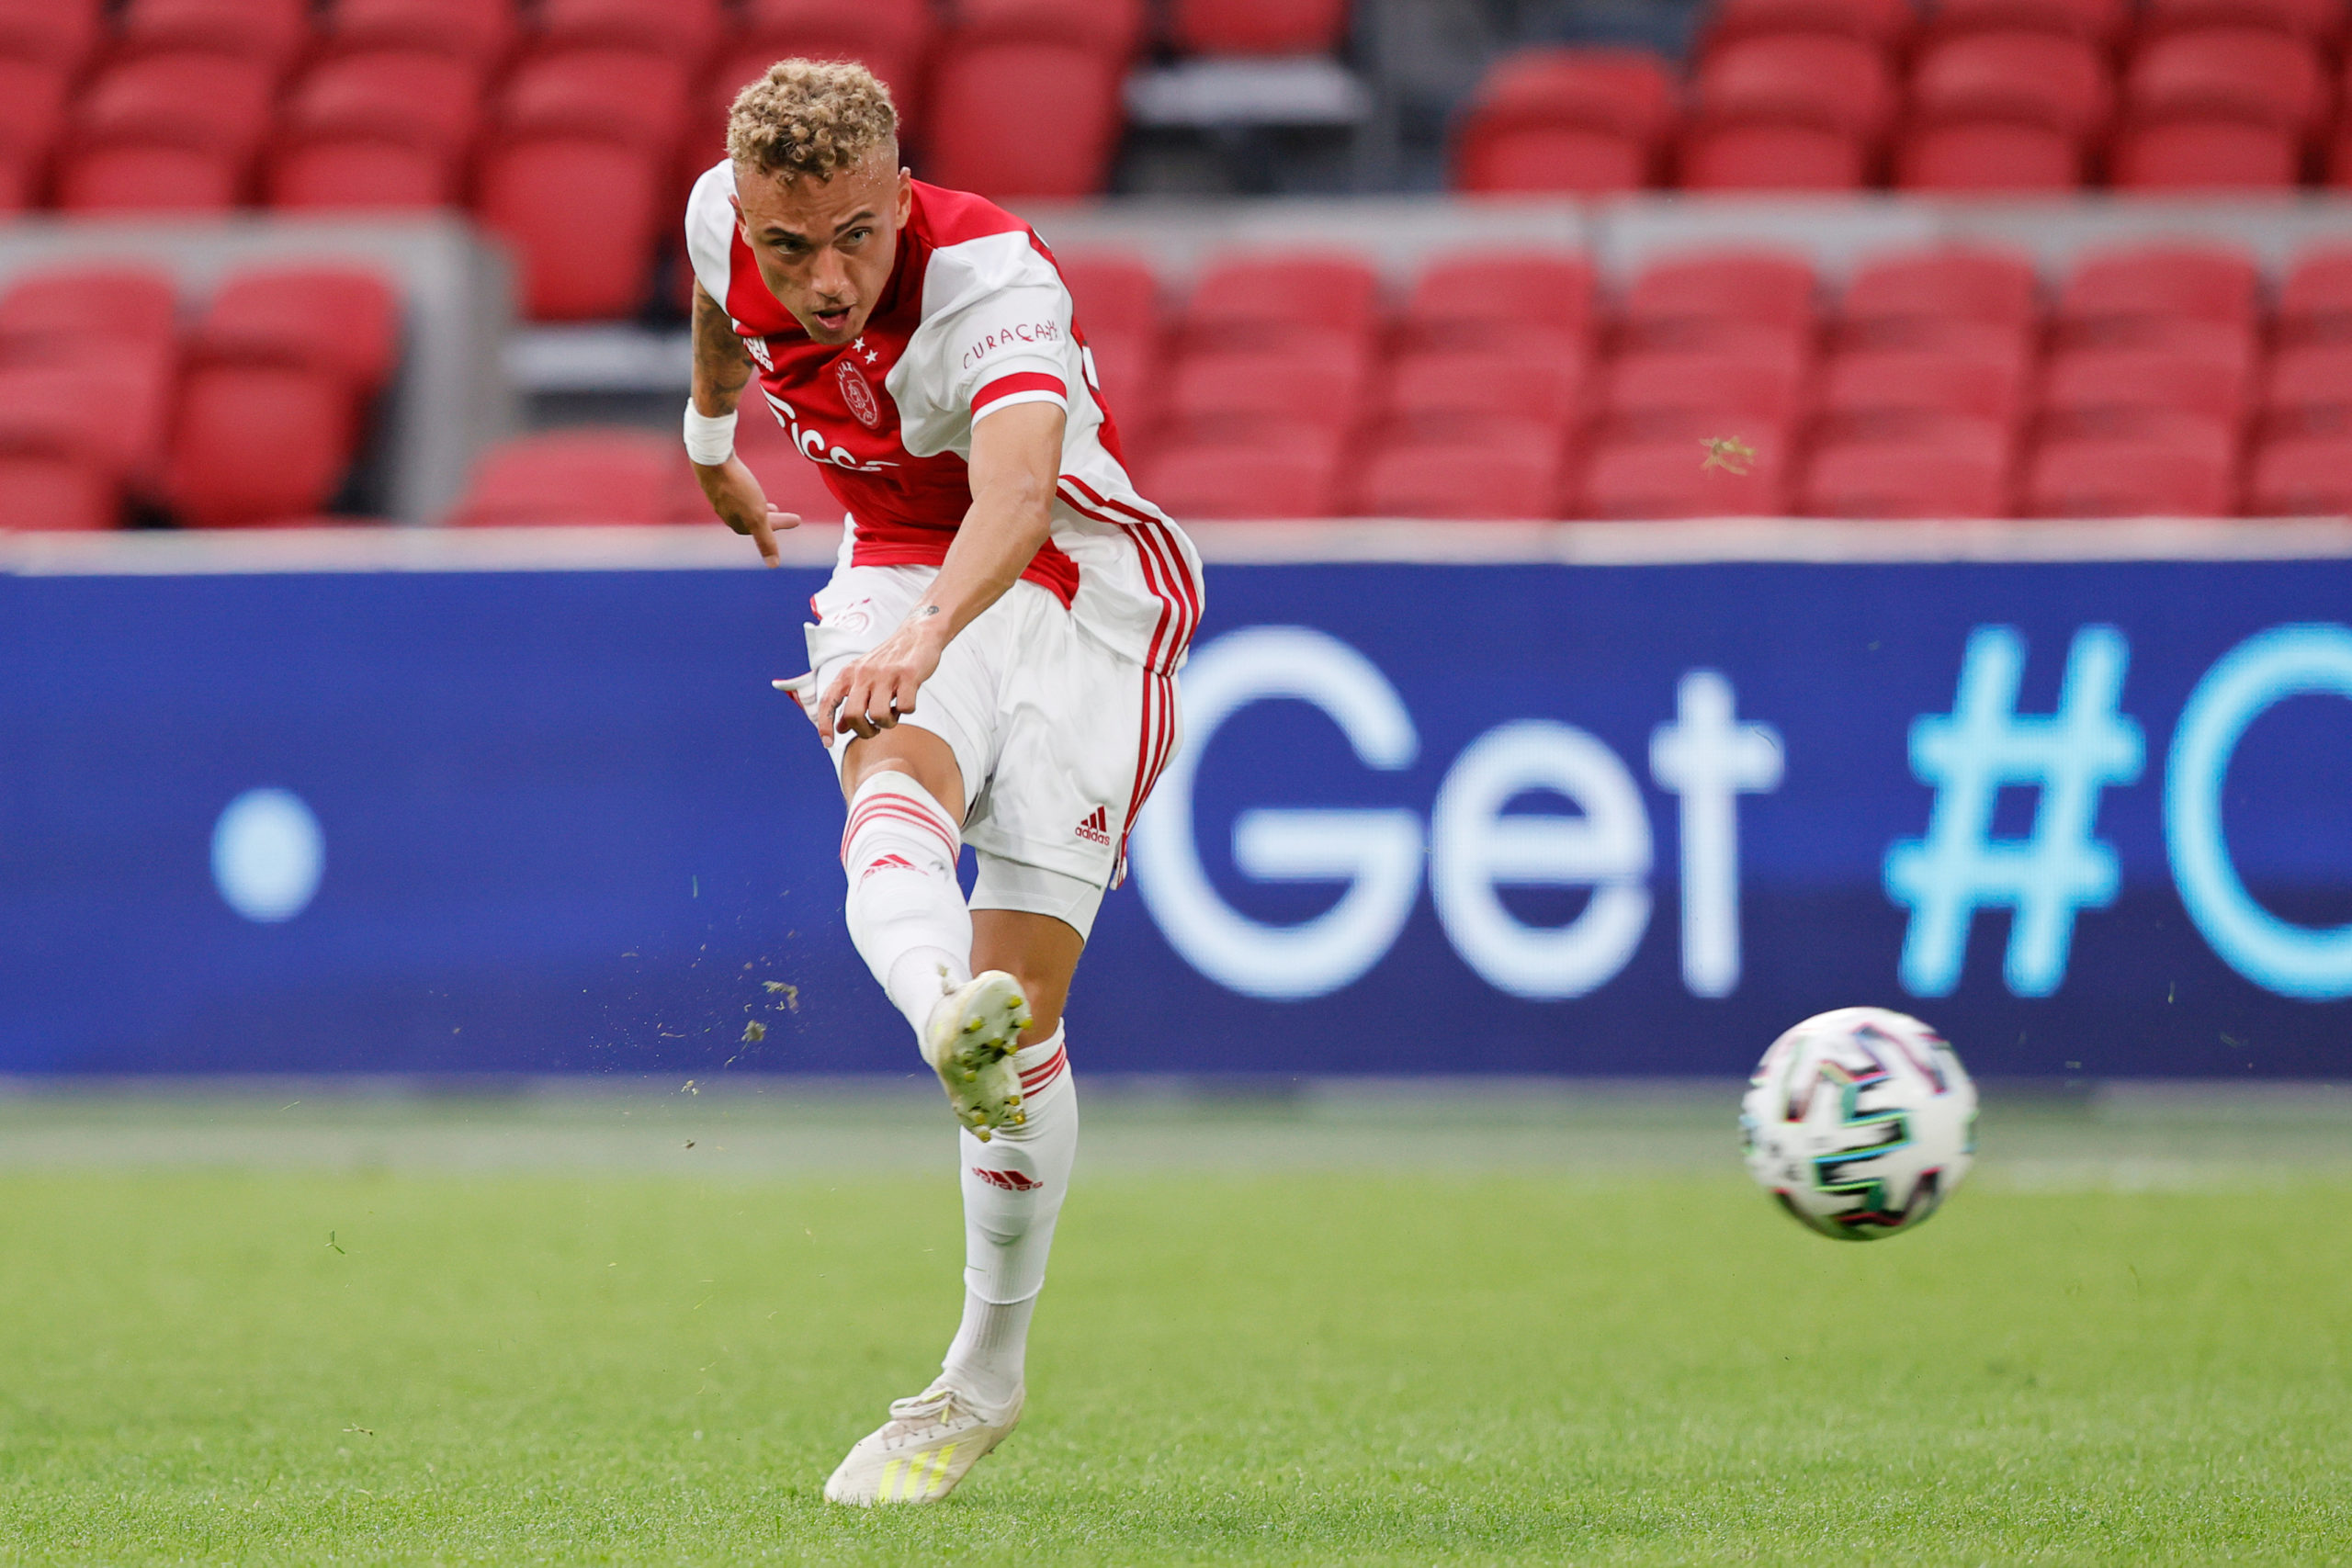 Celtic-linked Ajax youngster Noa Lang